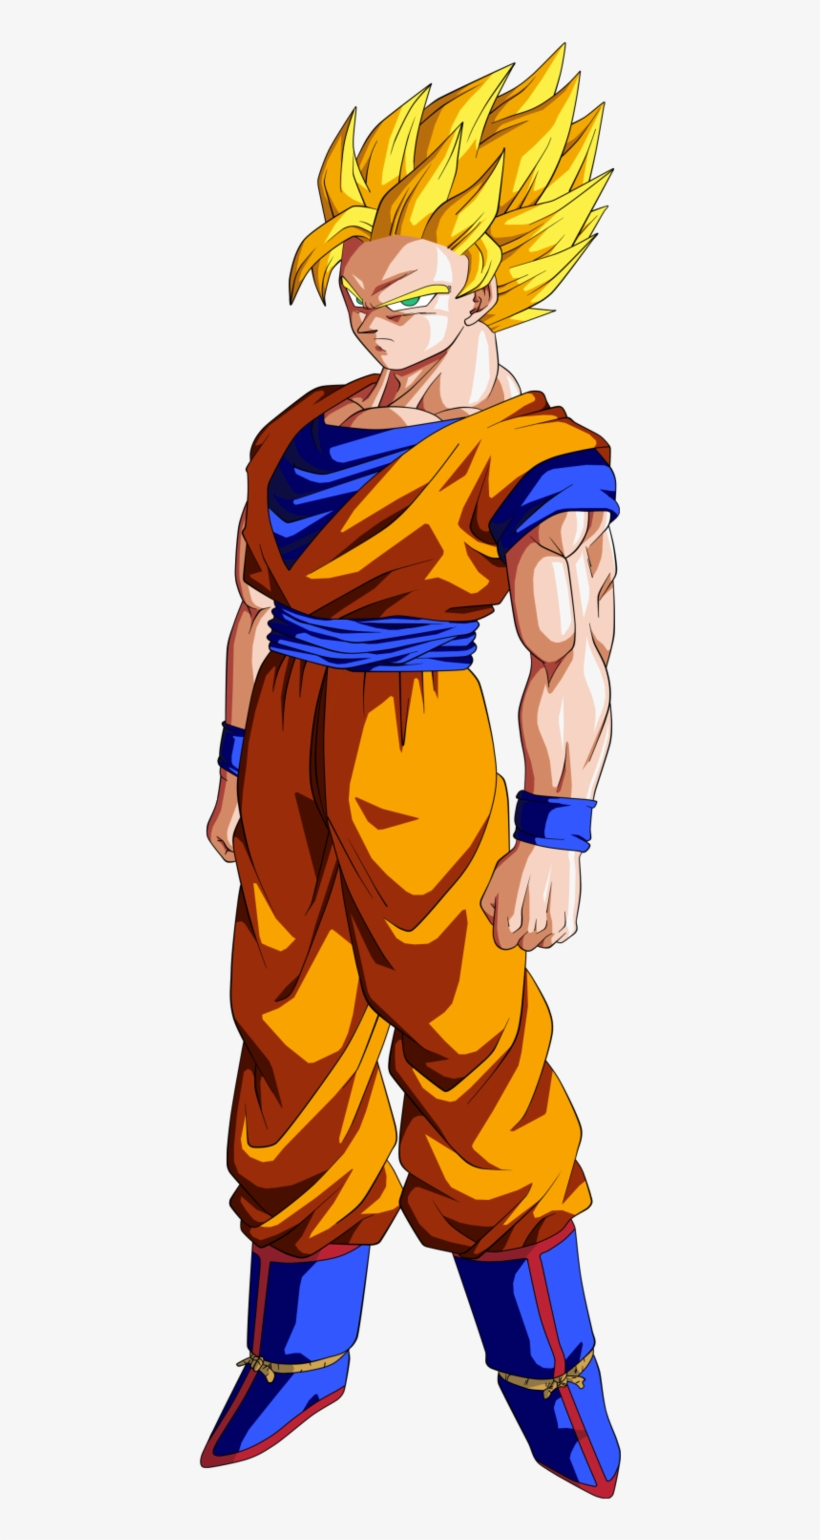 Super Saiyan 2 Goku Dragon Ball Z.